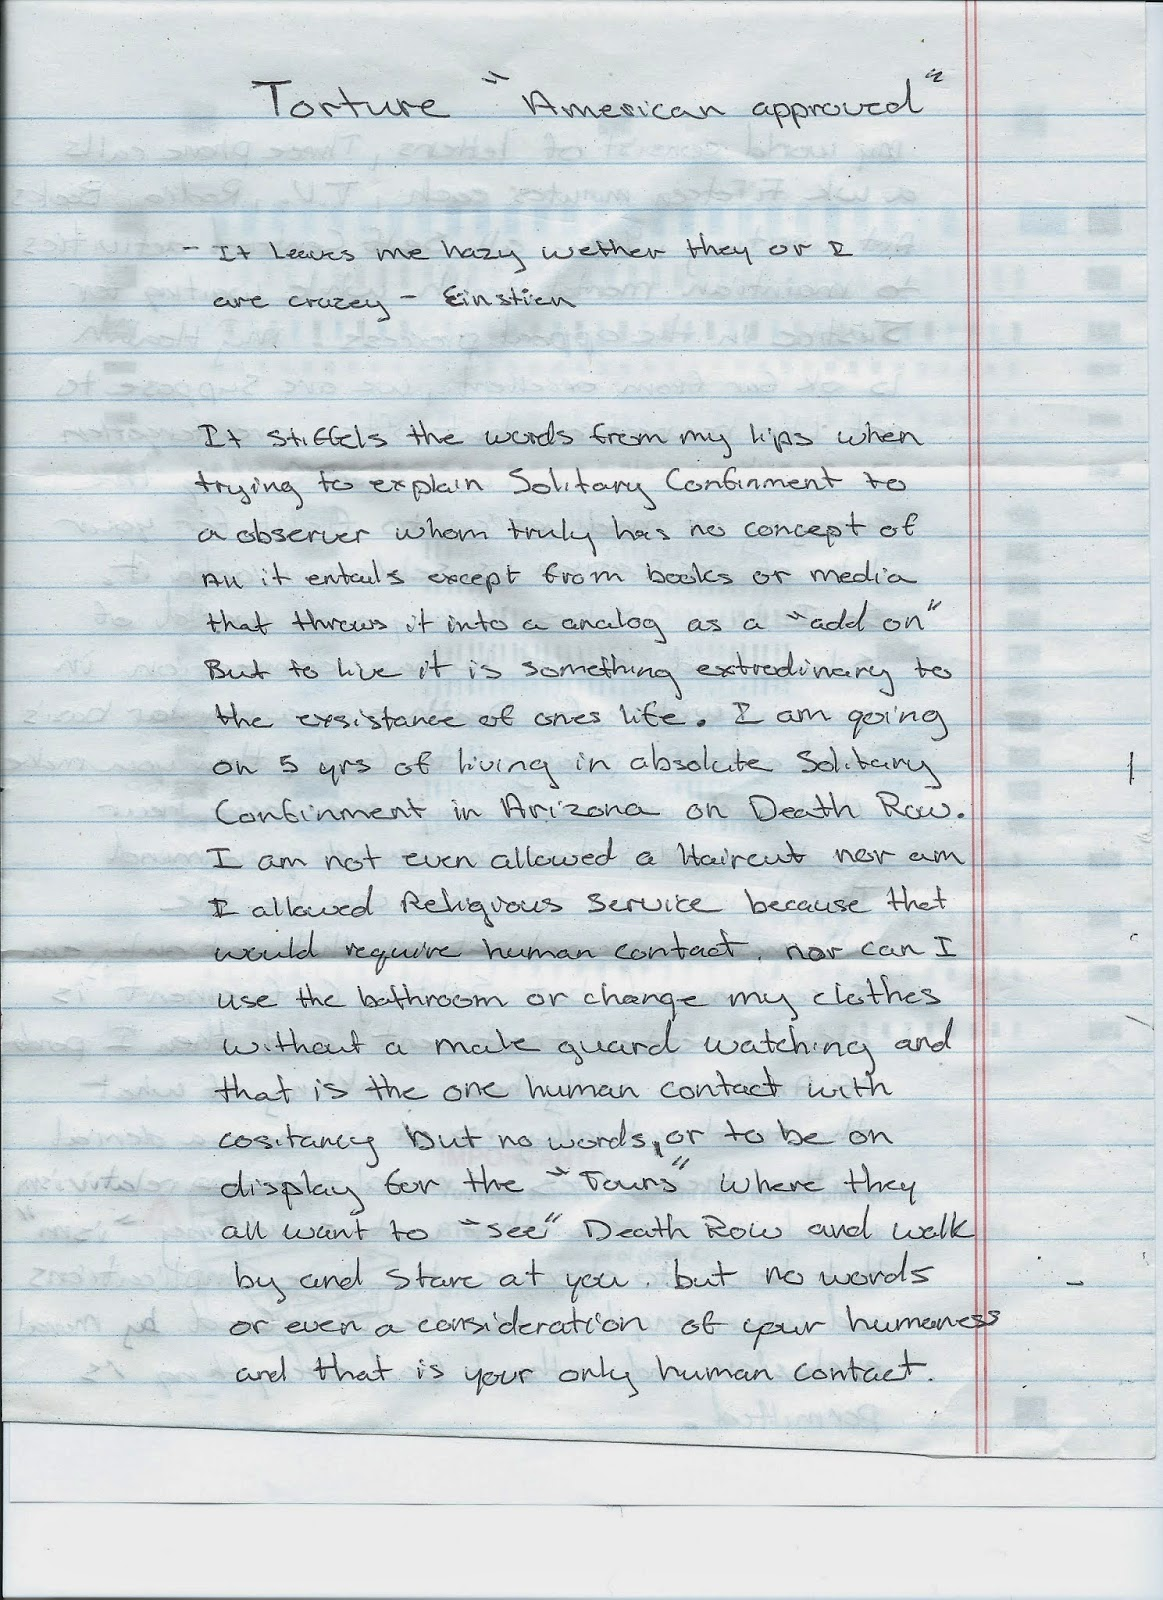 torture essay w condemned shawna forde arizona death row describes  w condemned shawna forde arizona death row describes shawna forde arizona death row describes solitary confinement